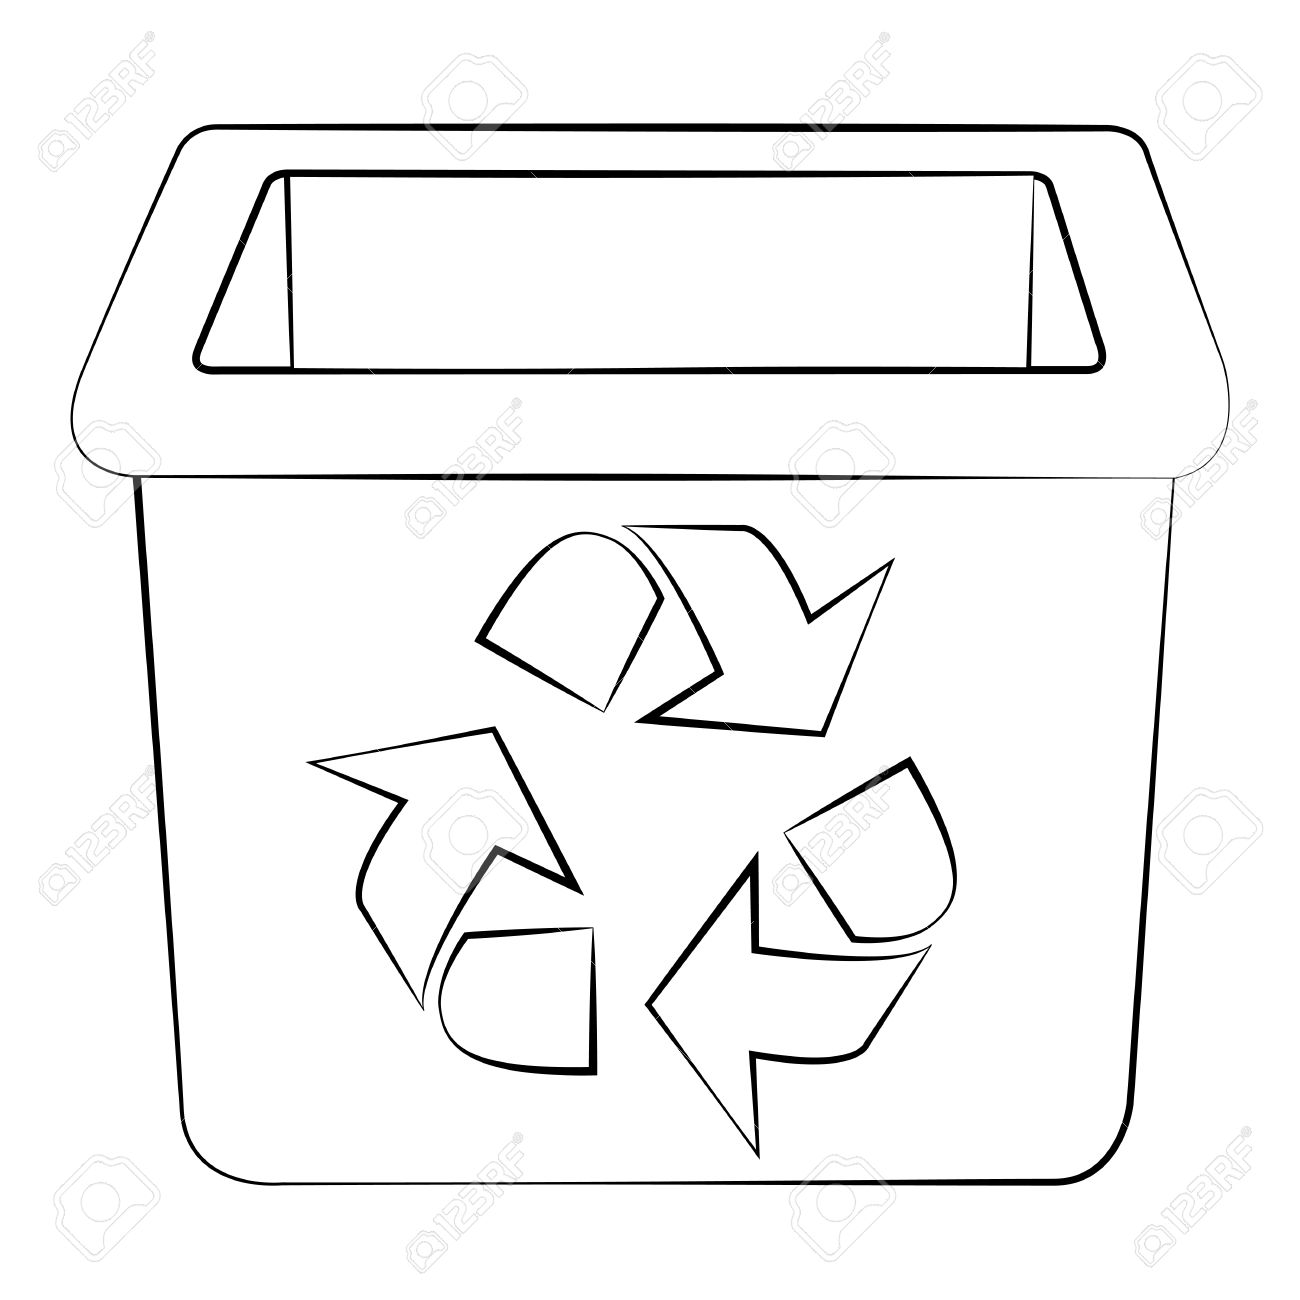 recycling bin clipart black and white - Clipground